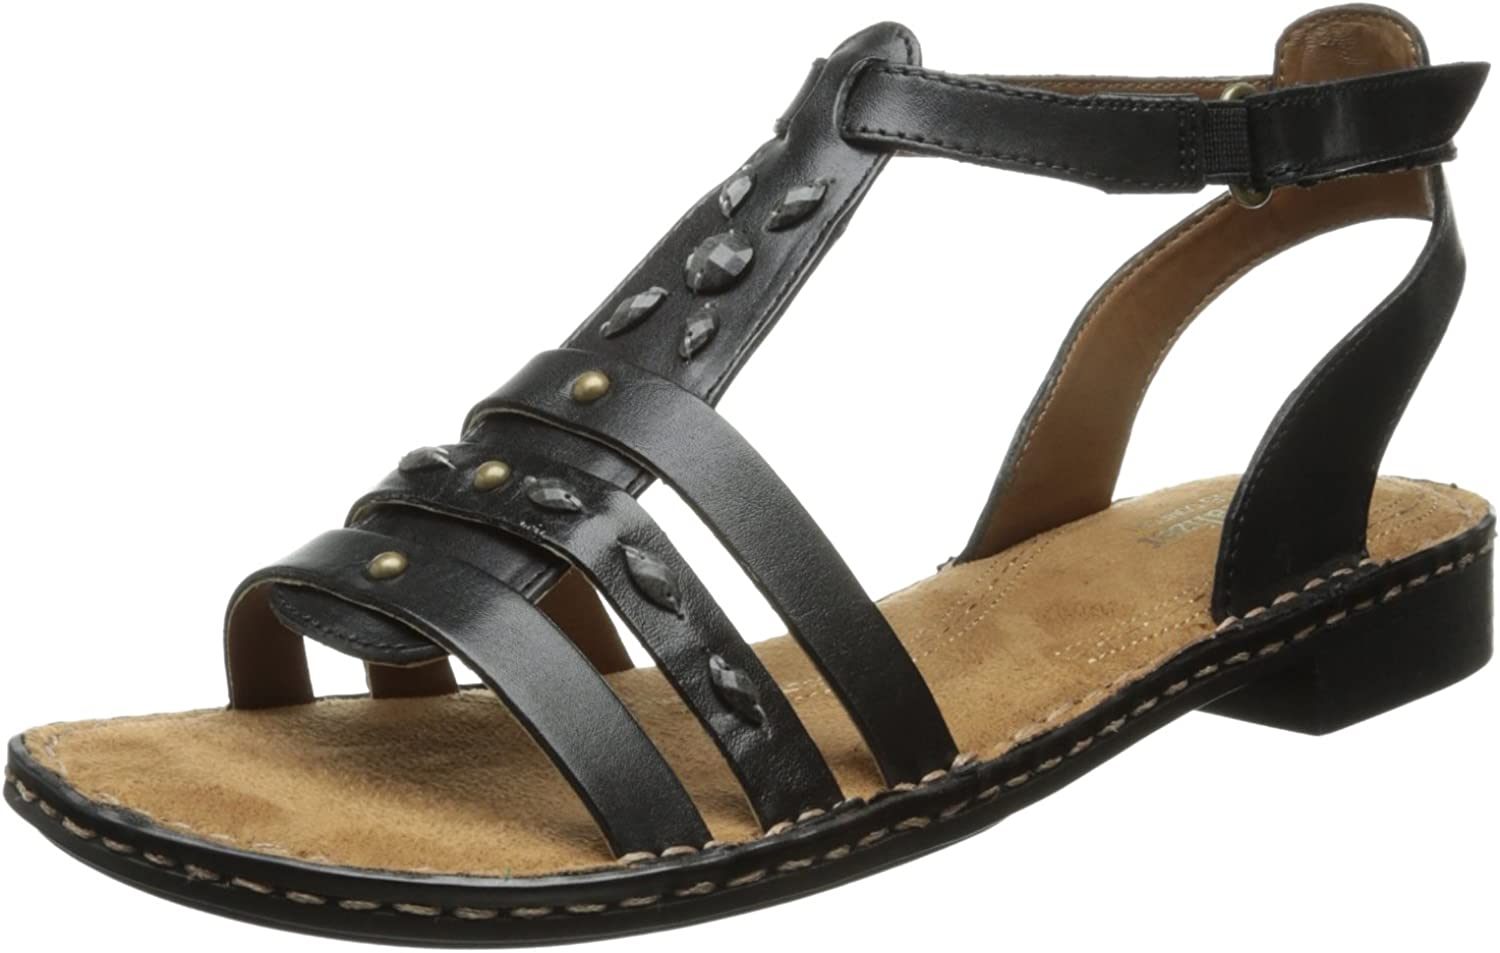 Naturalizer Naturalizer Naturalizer Woherrar Rhapsody Gladiator Sandal  ny notering